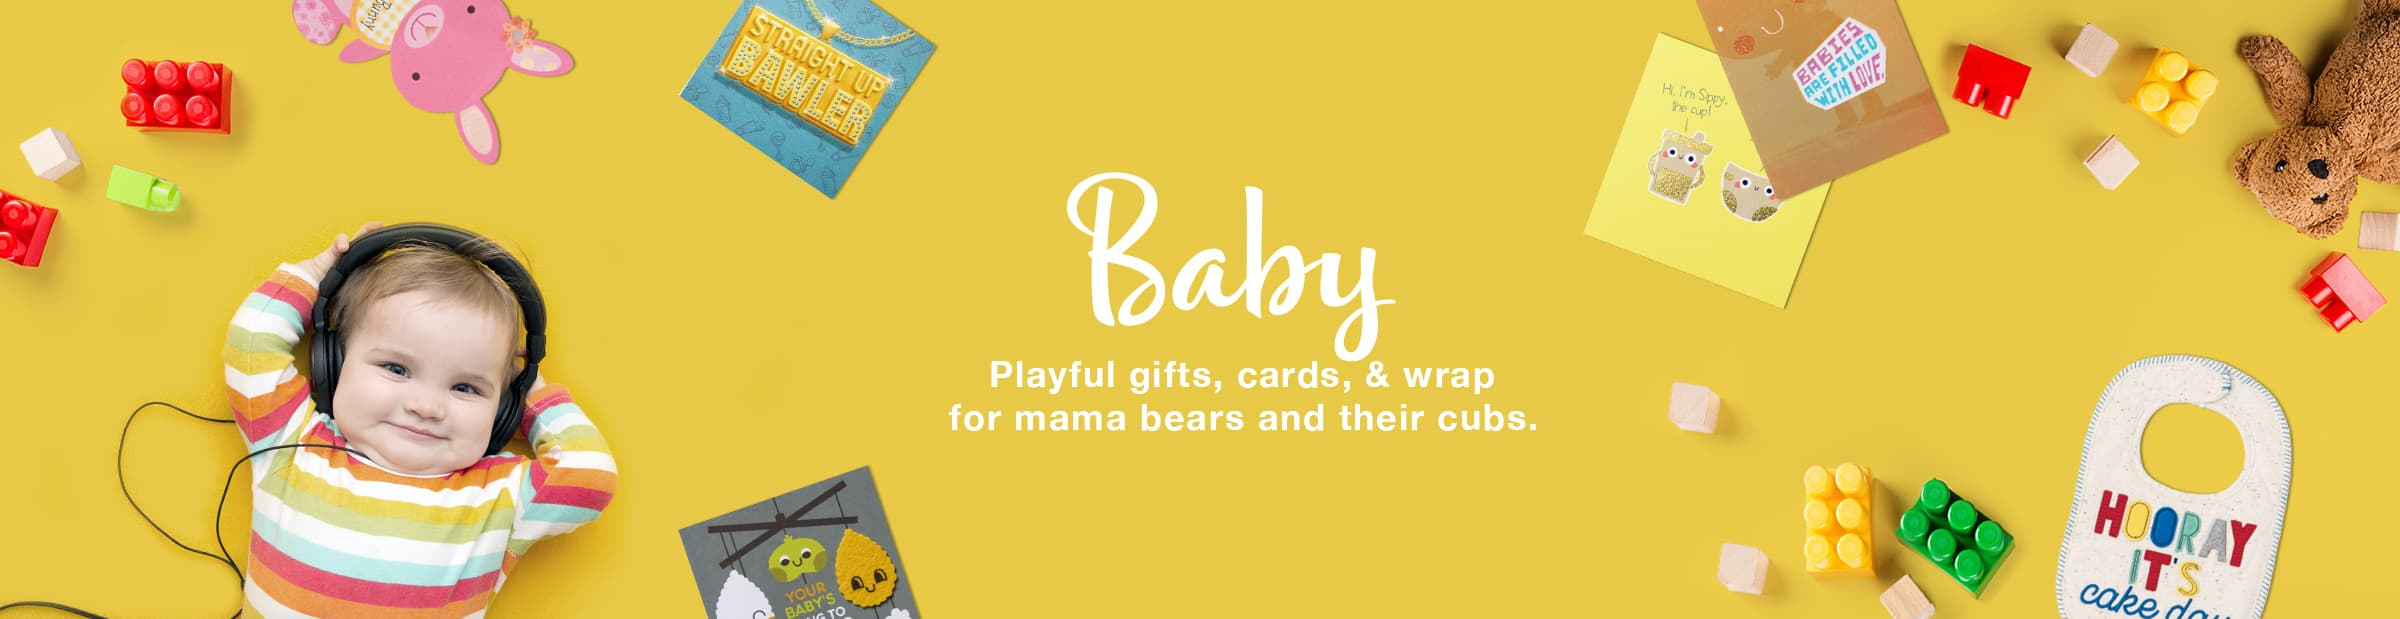 Baby chilling on the floor with his toys, greeting cards and bibs - Shop Baby Ecards, Cards, Gifts and more